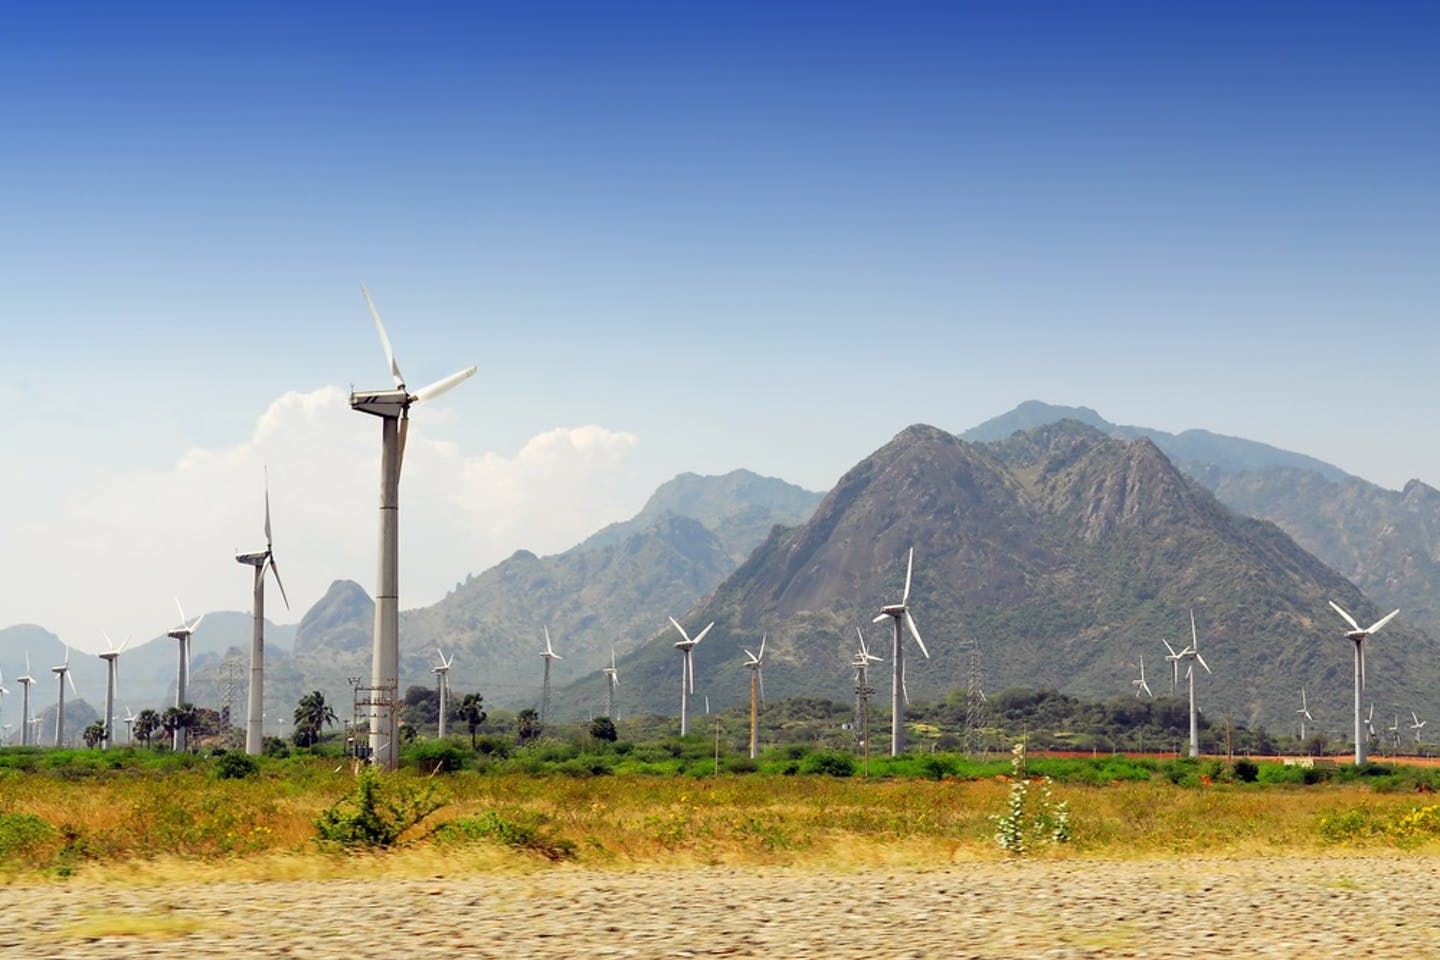 kanyakumar wind farm